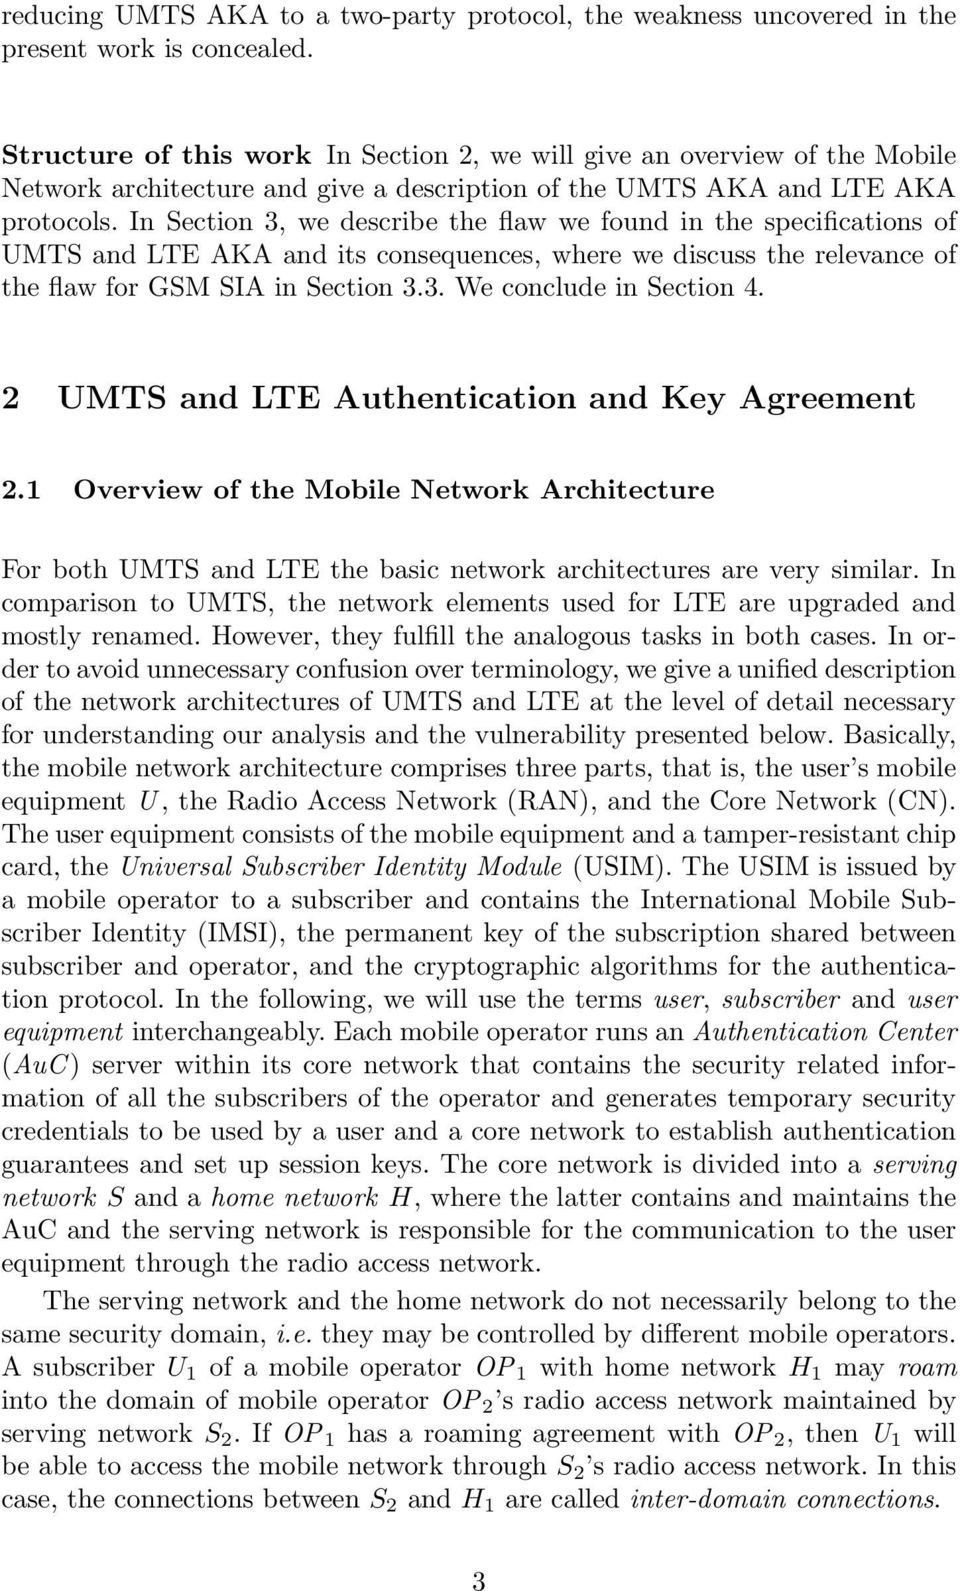 In Section 3, we describe the flaw we found in the specifications of UMTS and LTE AKA and its consequences, where we discuss the relevance of the flaw for GSM SIA in Section 3.3. We conclude in Section 4.